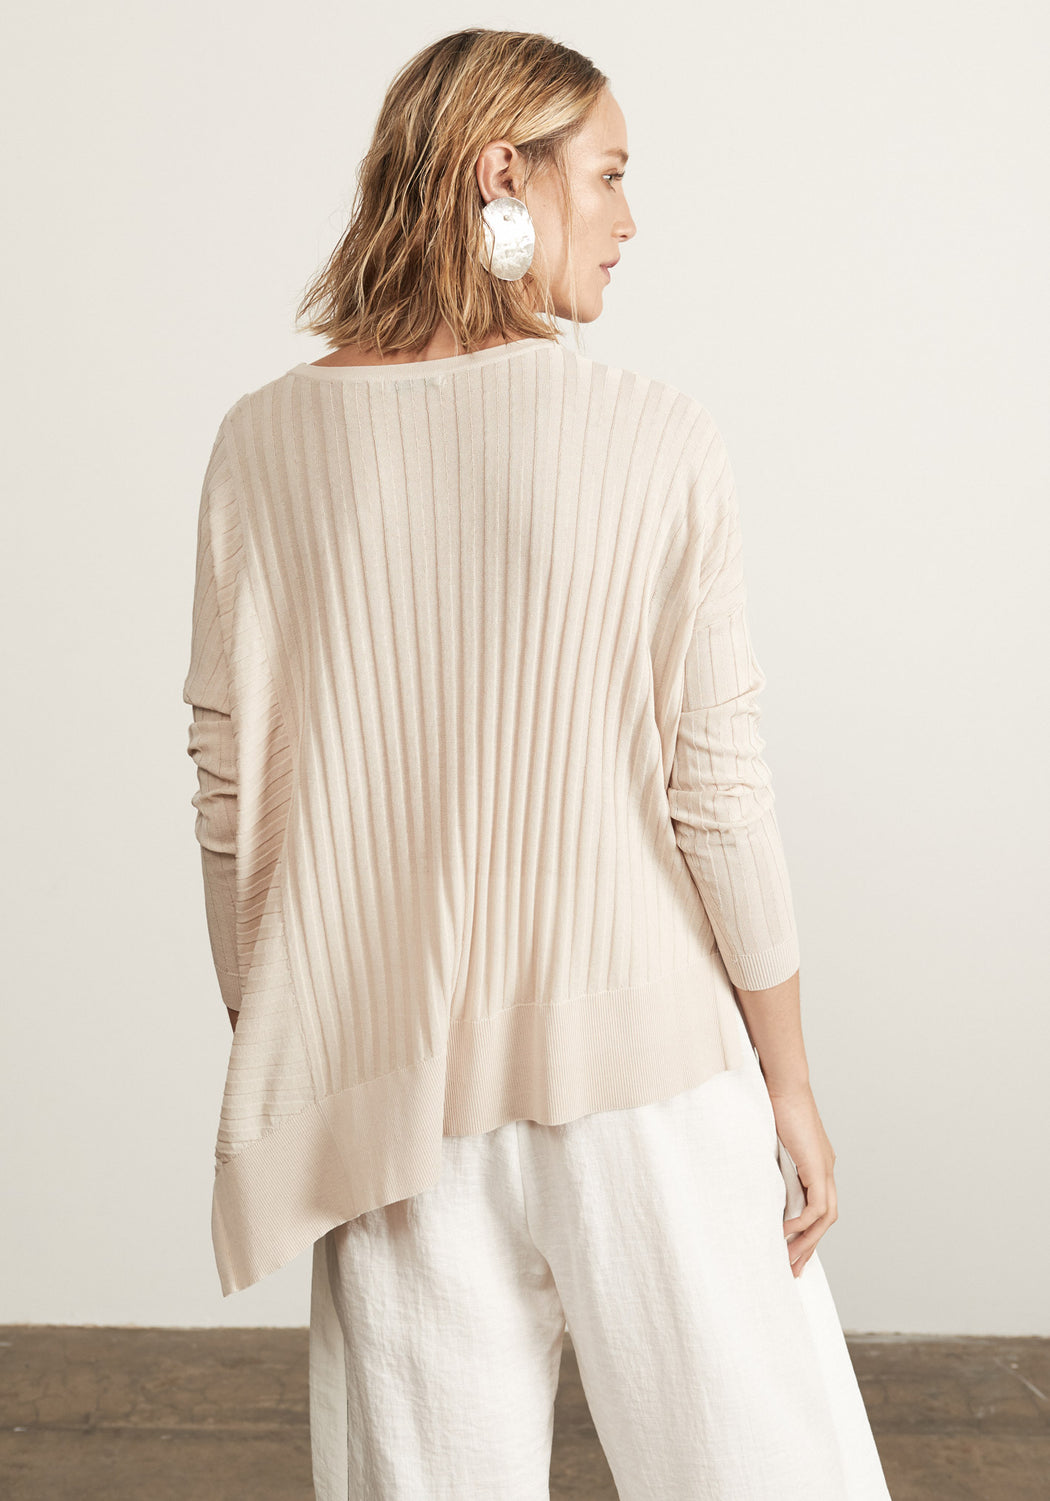 Otille Panelled Knit